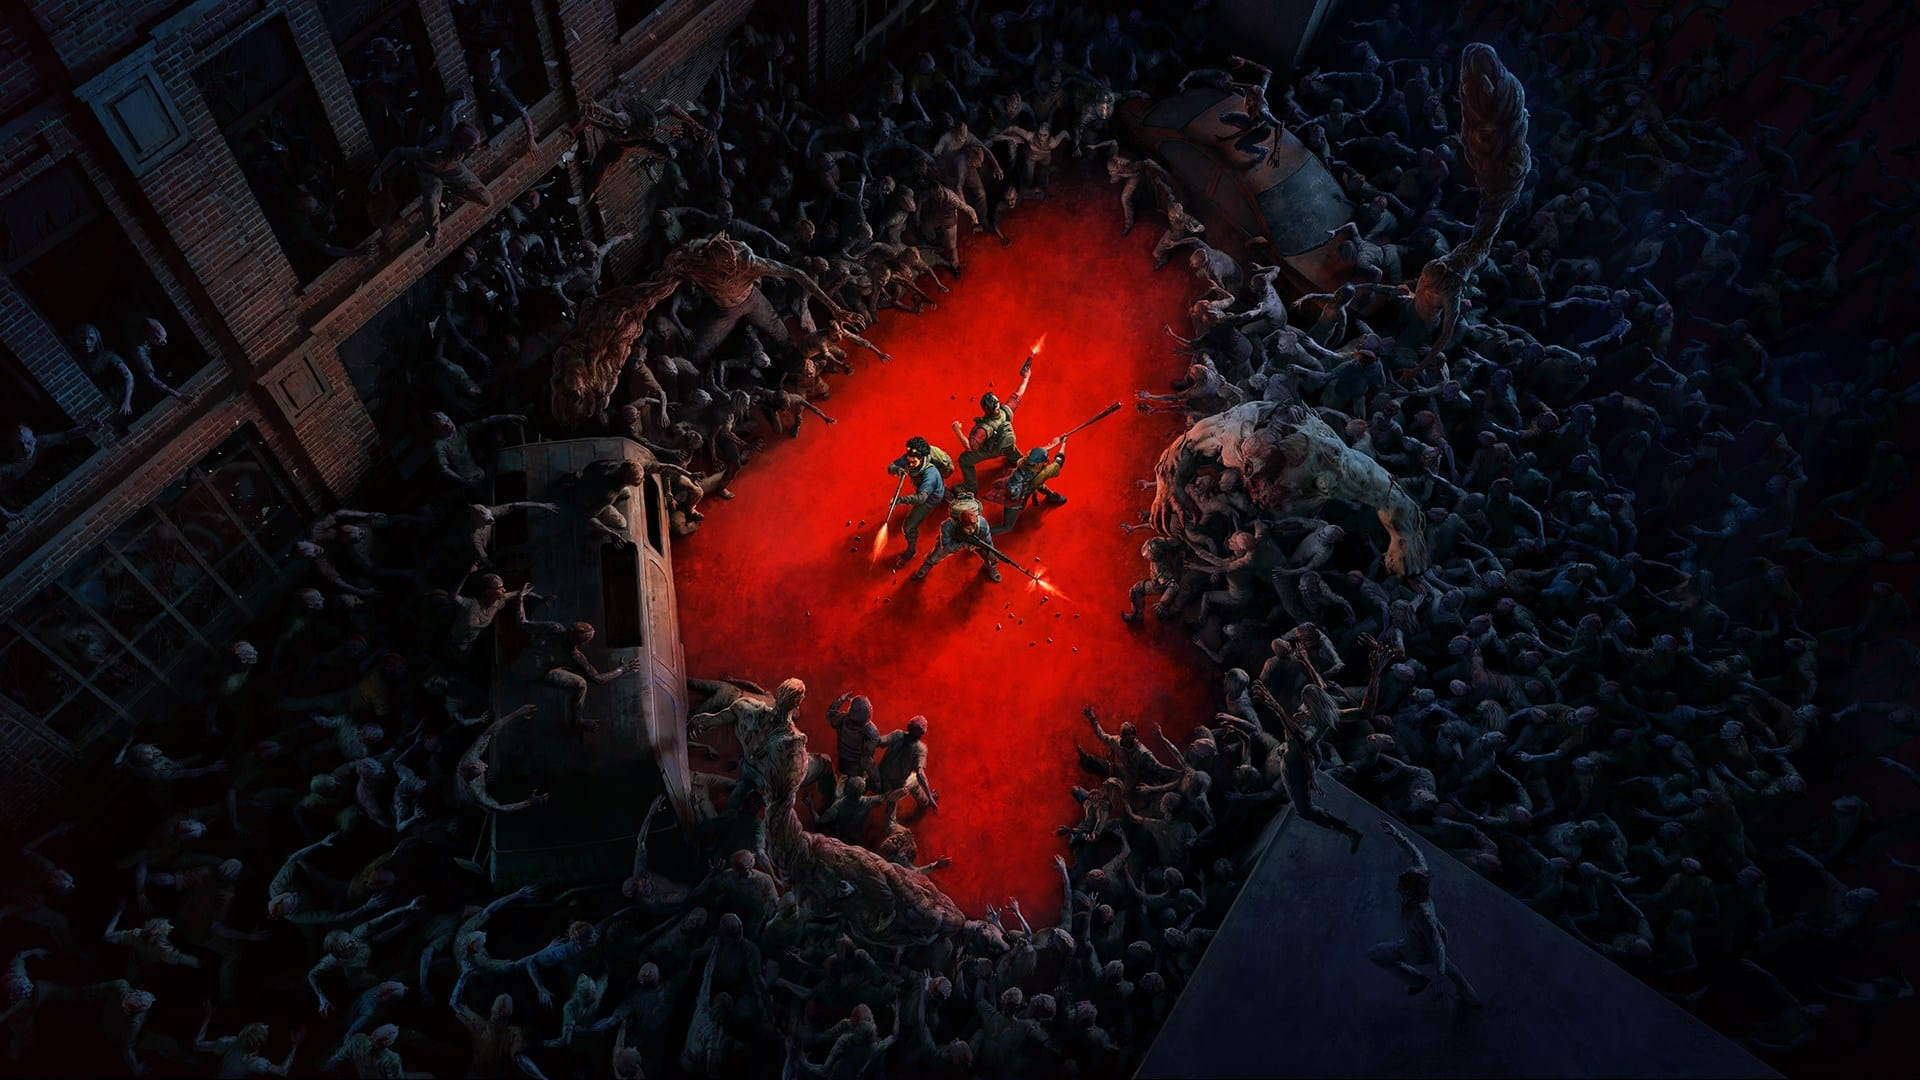 Back 4 Blood Gets New Dev Commentary Video Covering Enemies, Gameplay & More